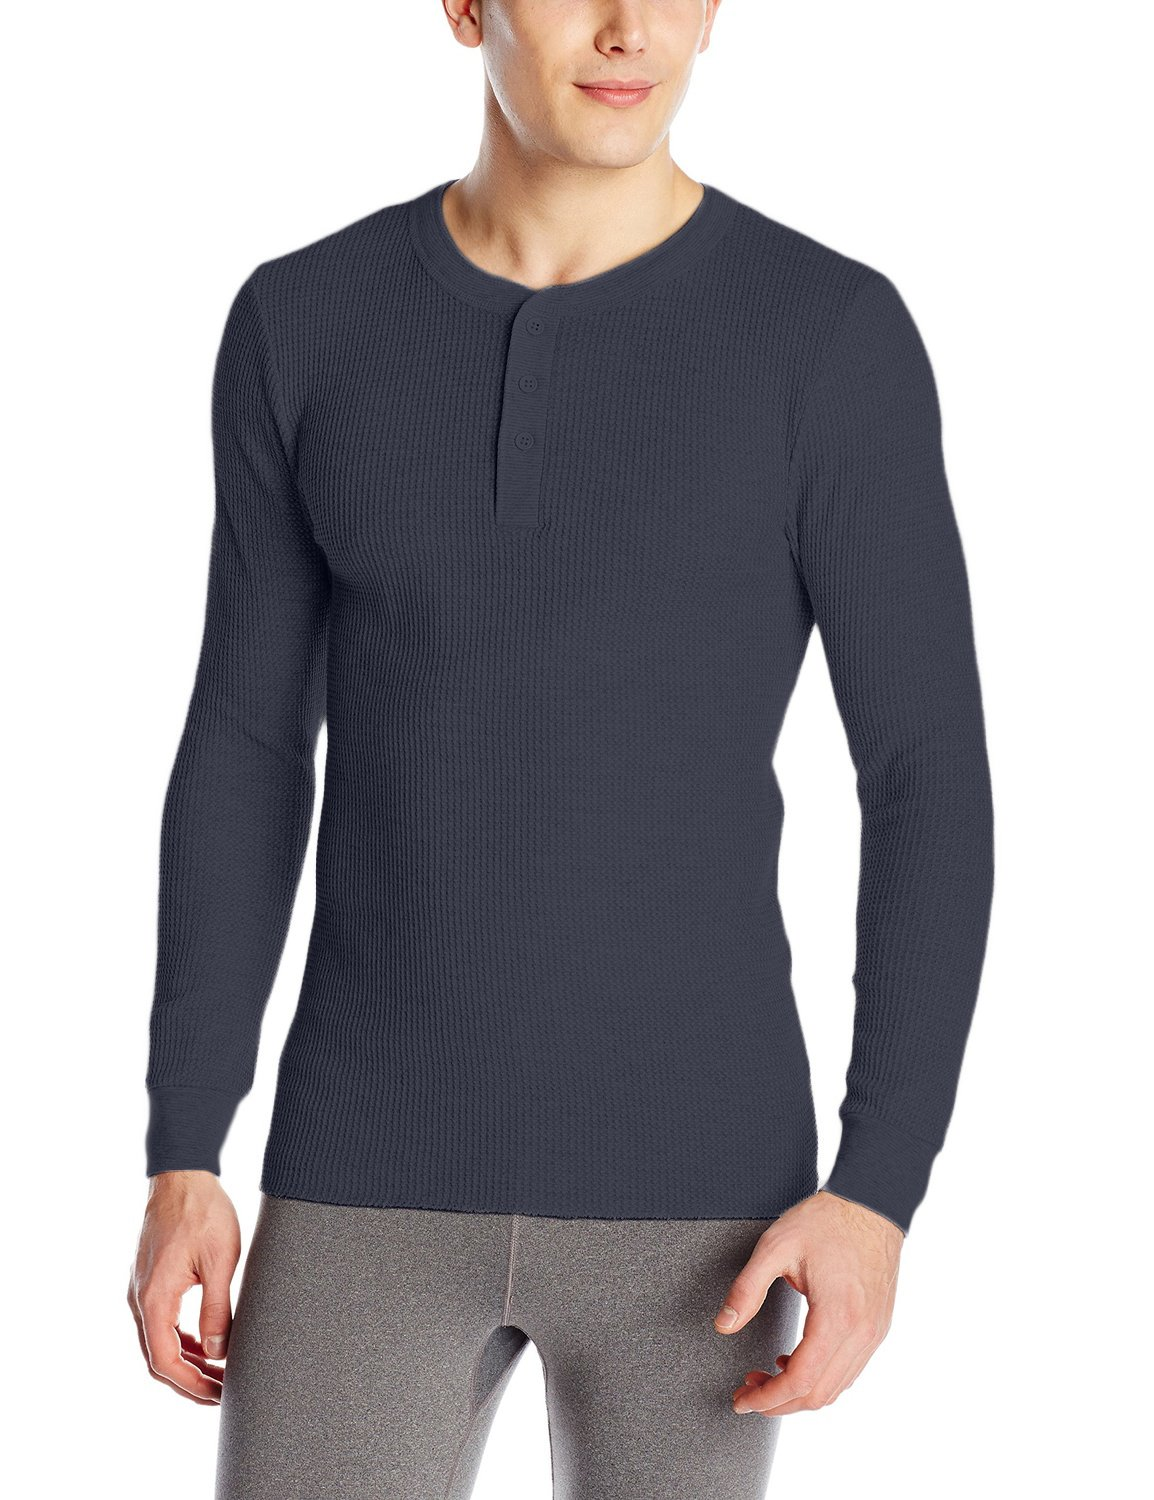 Fruit of the Loom Men's Classics Midweight Waffle Thermal Henley Top (Medium, Navy) by Fruit of the Loom